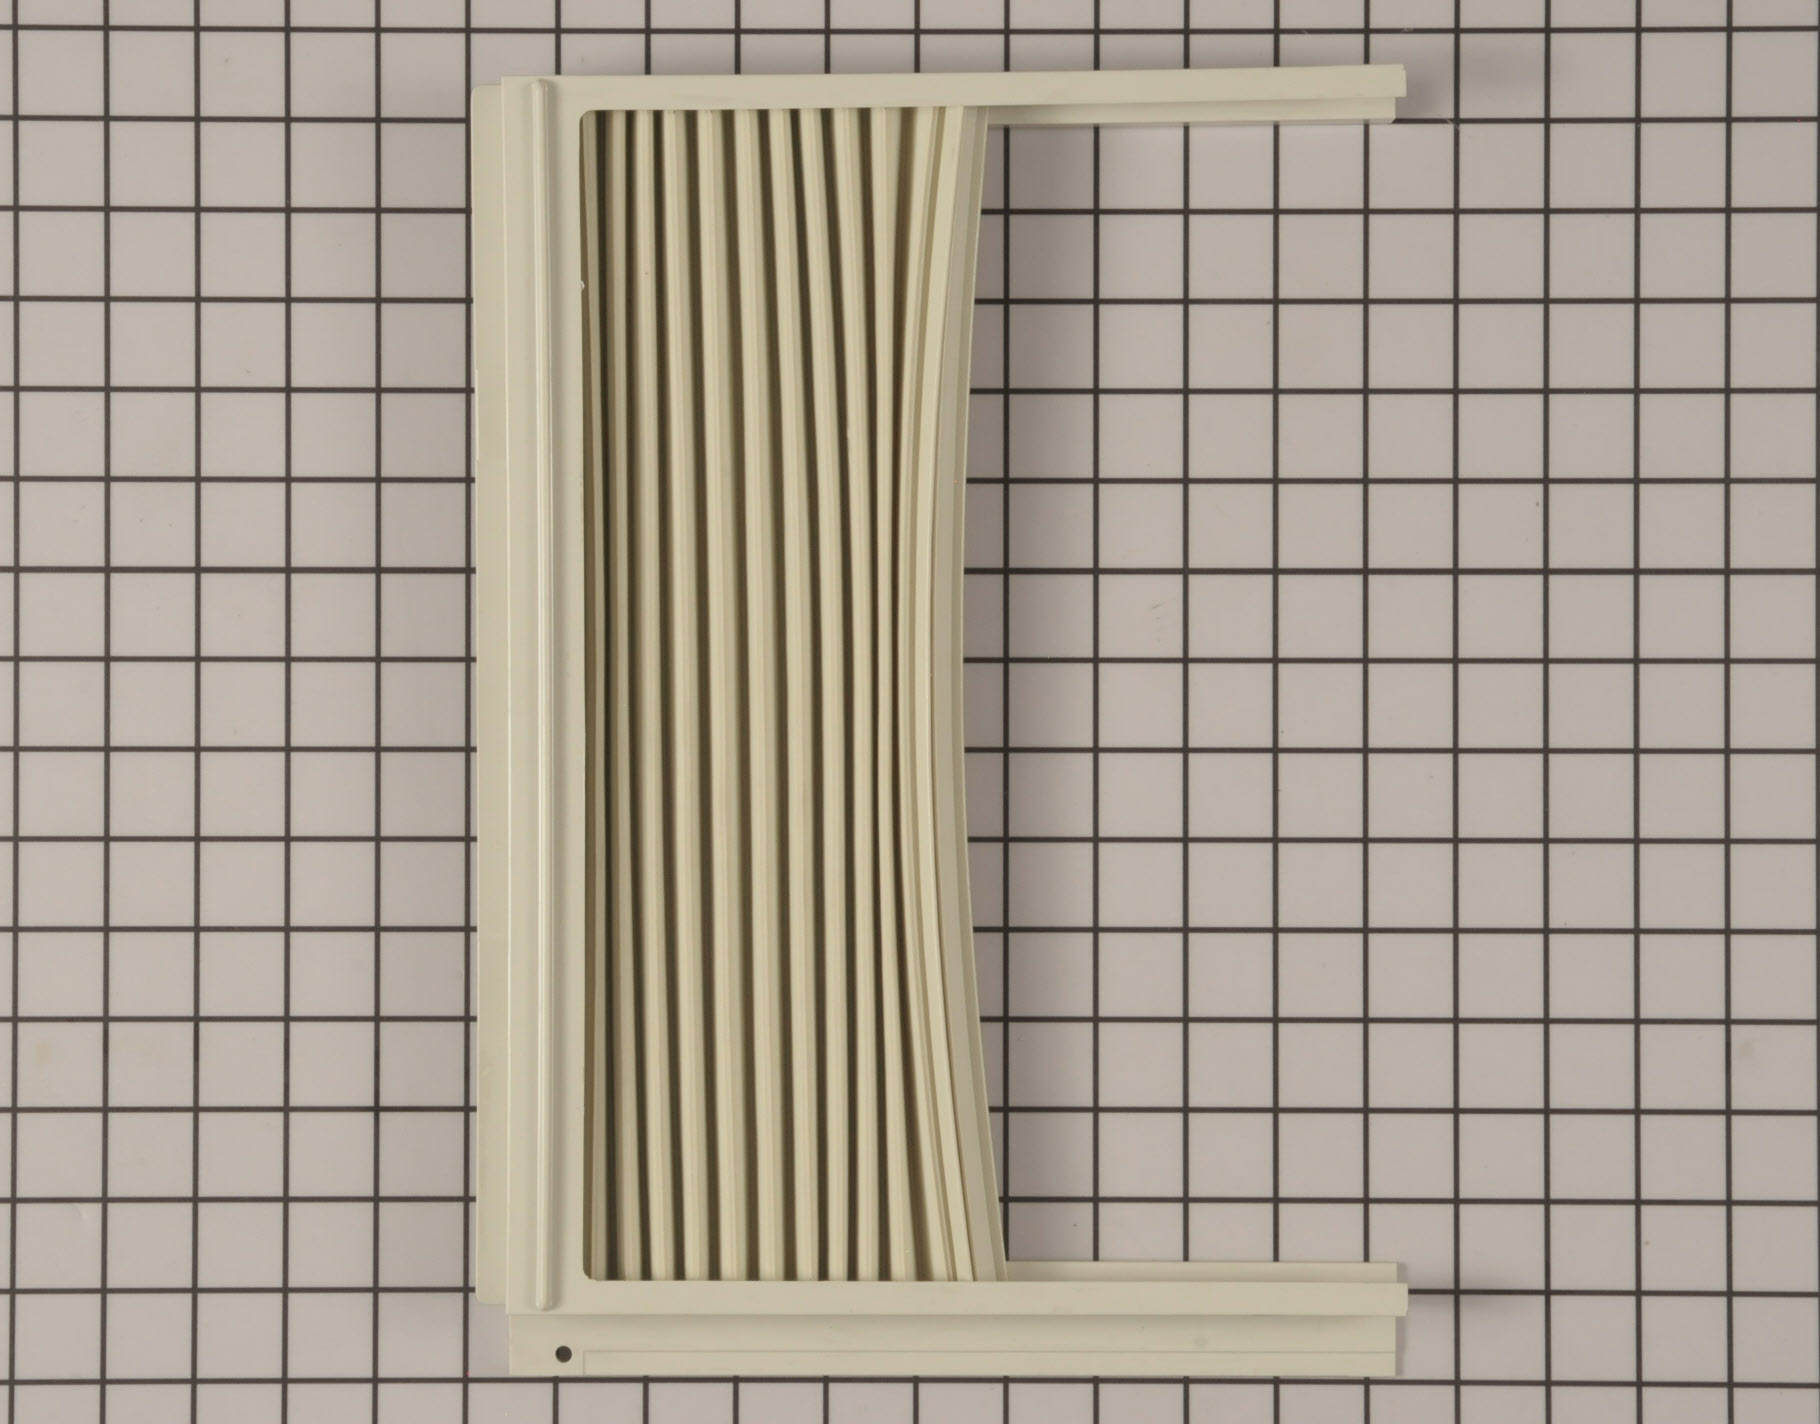 Kenmore Air Conditioner Part # 5304423372 - Window Side Curtain and Frame